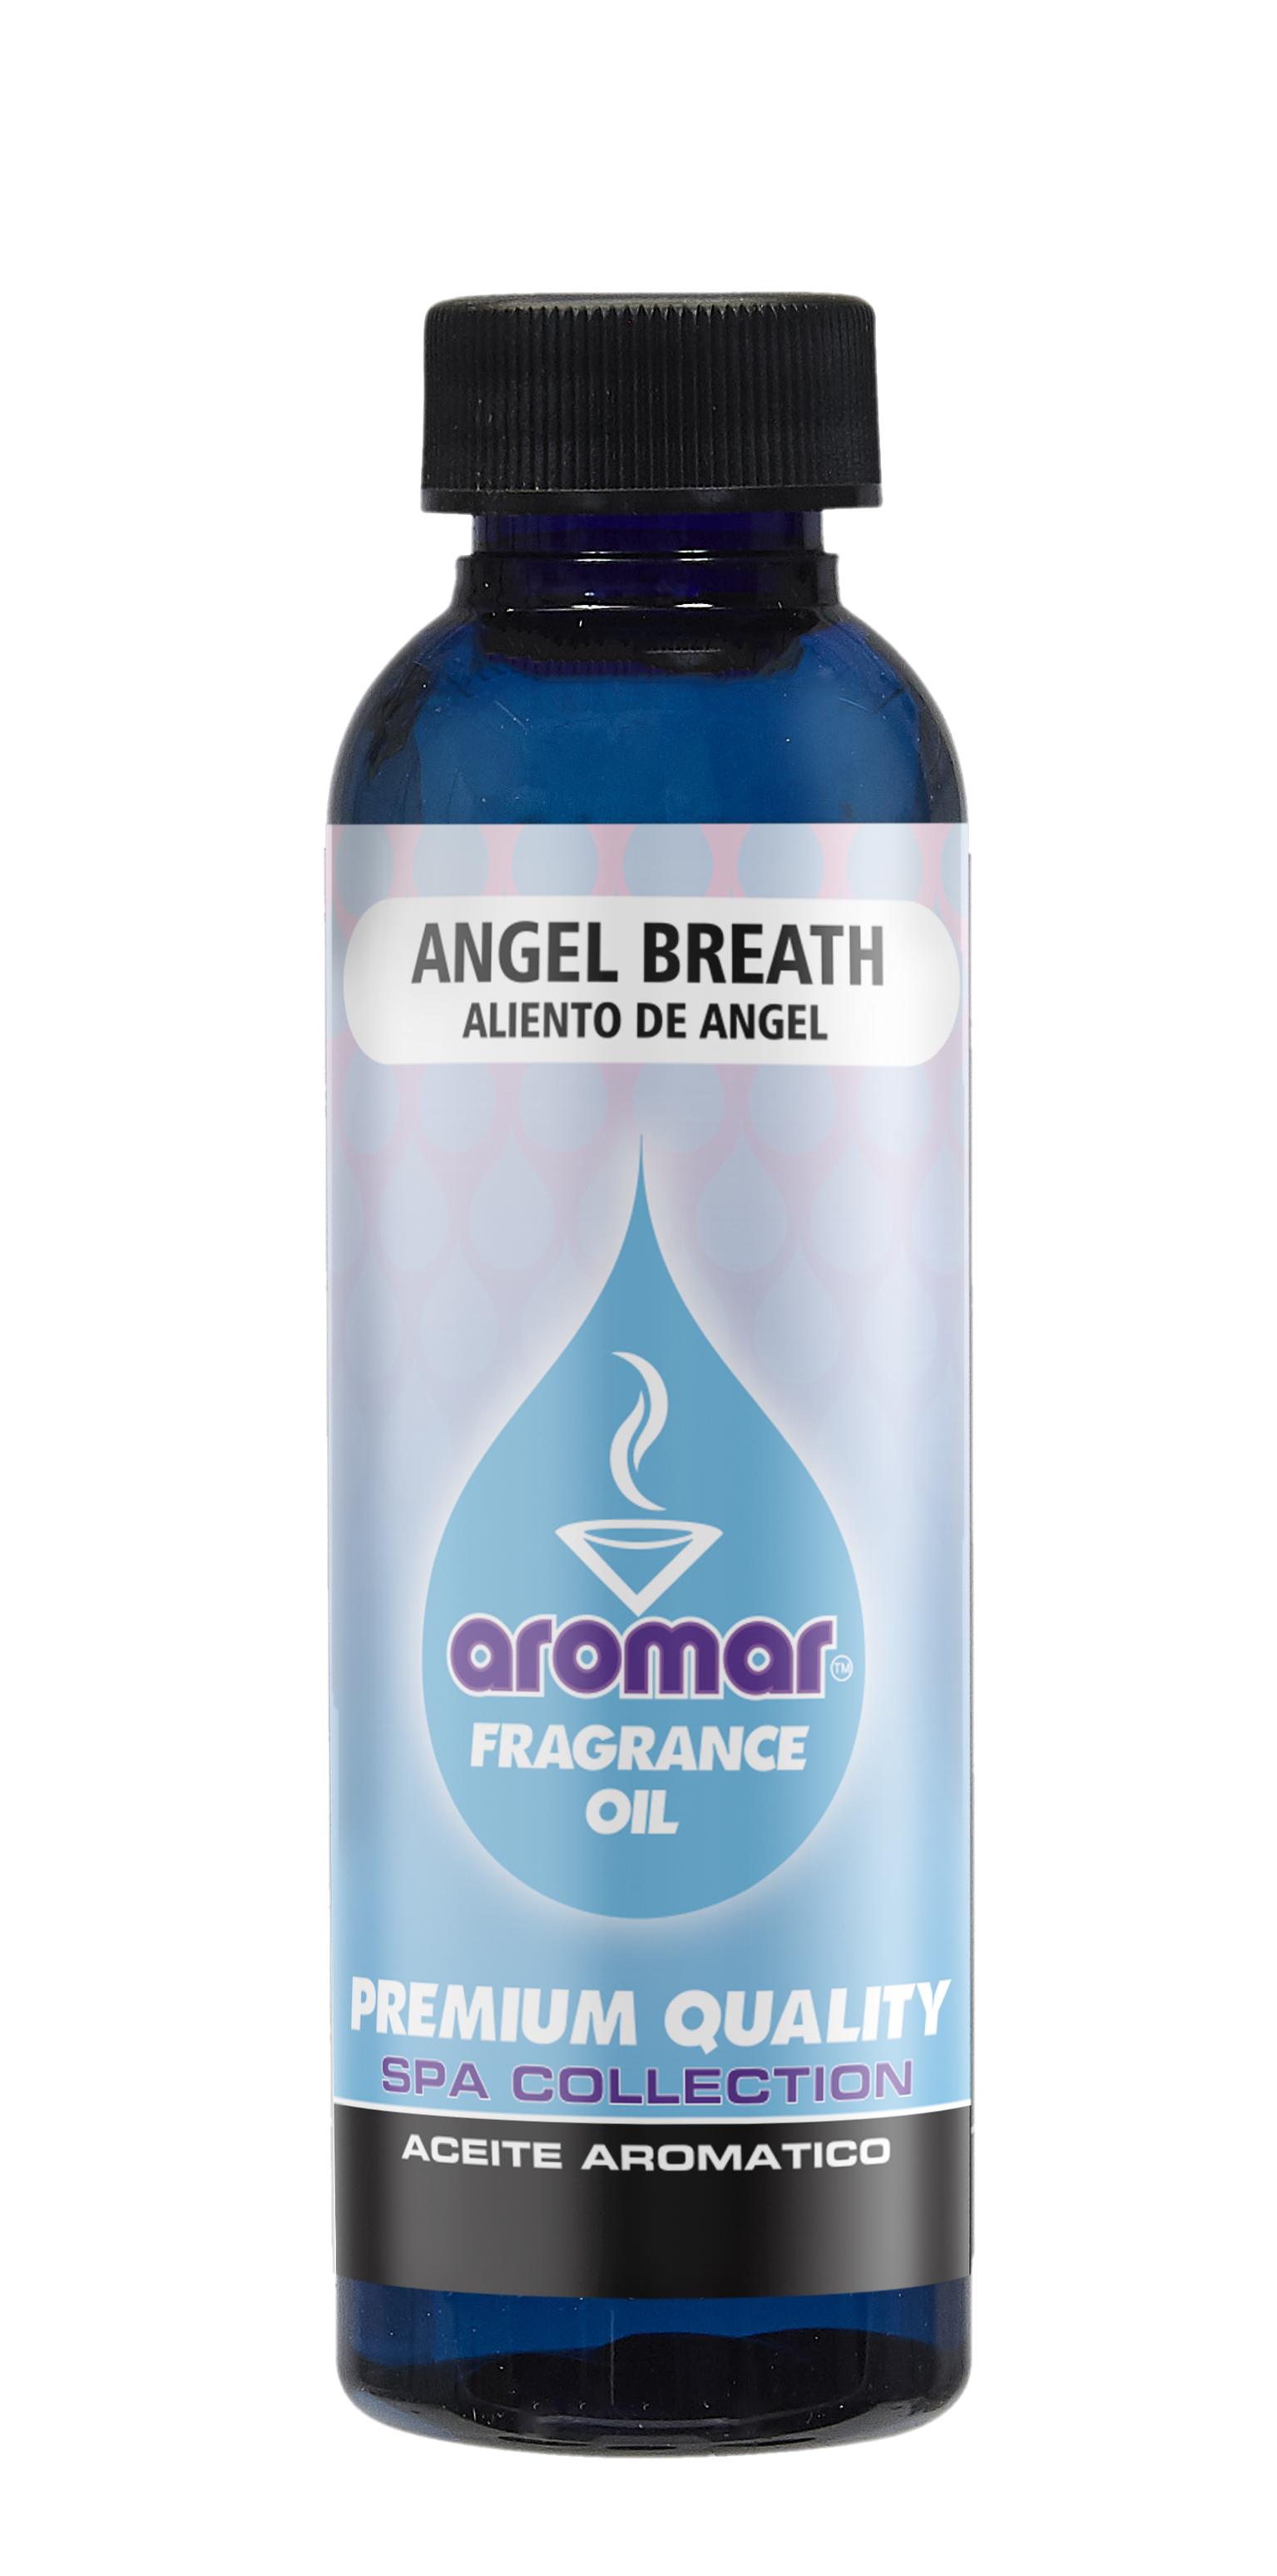 Angel Breath Aromatic Oil